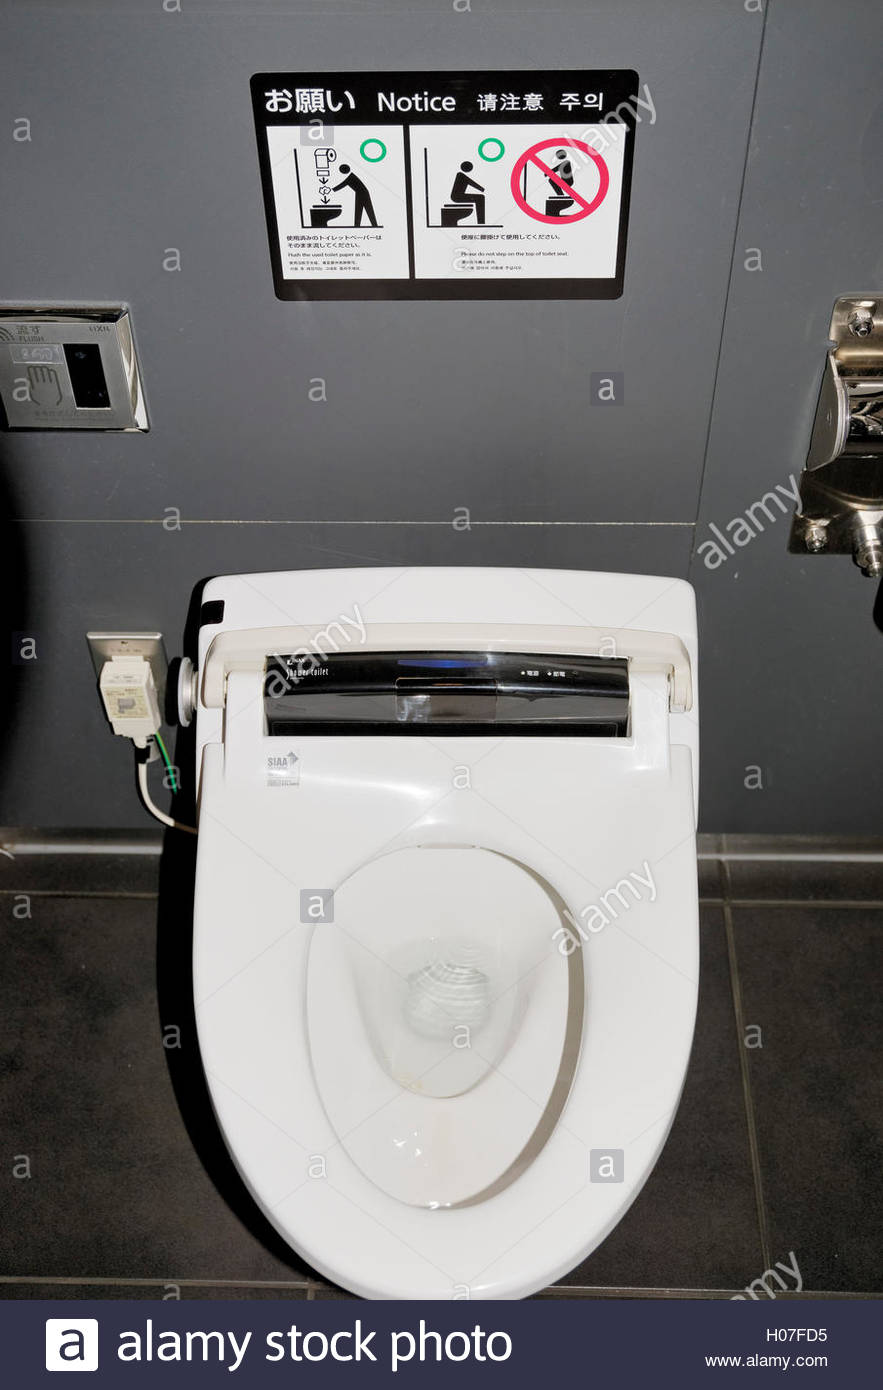 Japan Toilet Stock Photos & Japan Toilet Stock Images - Alamy